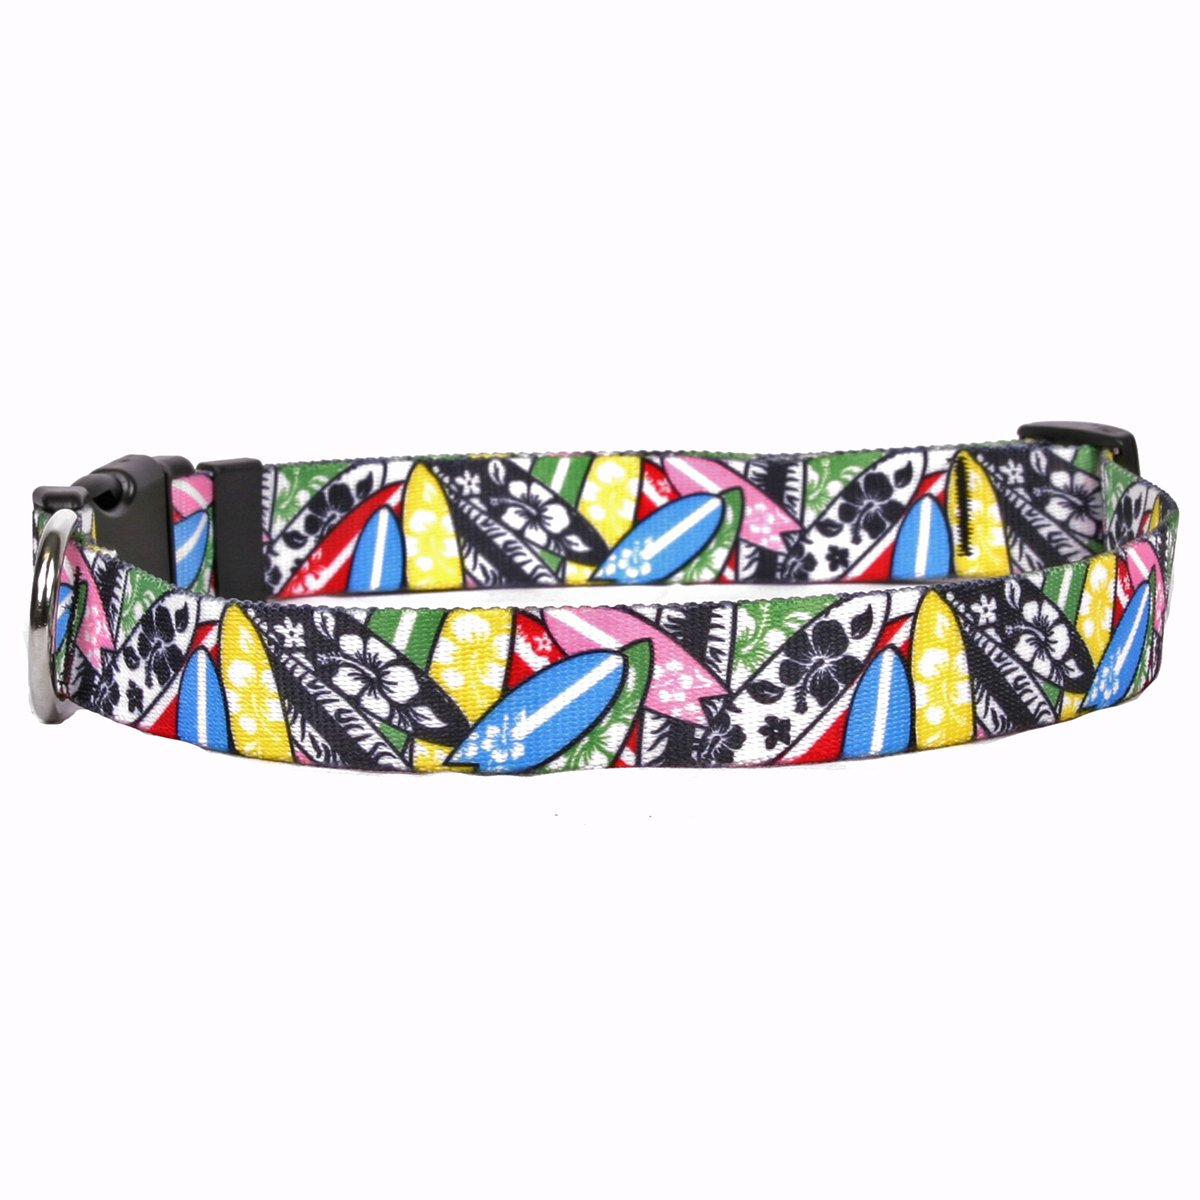 Yellow Dog Design Surfboards Dog Collar with Tag-A-Long ID Tag System-Small-3/4'' Wide and fits Neck 10 to 14''